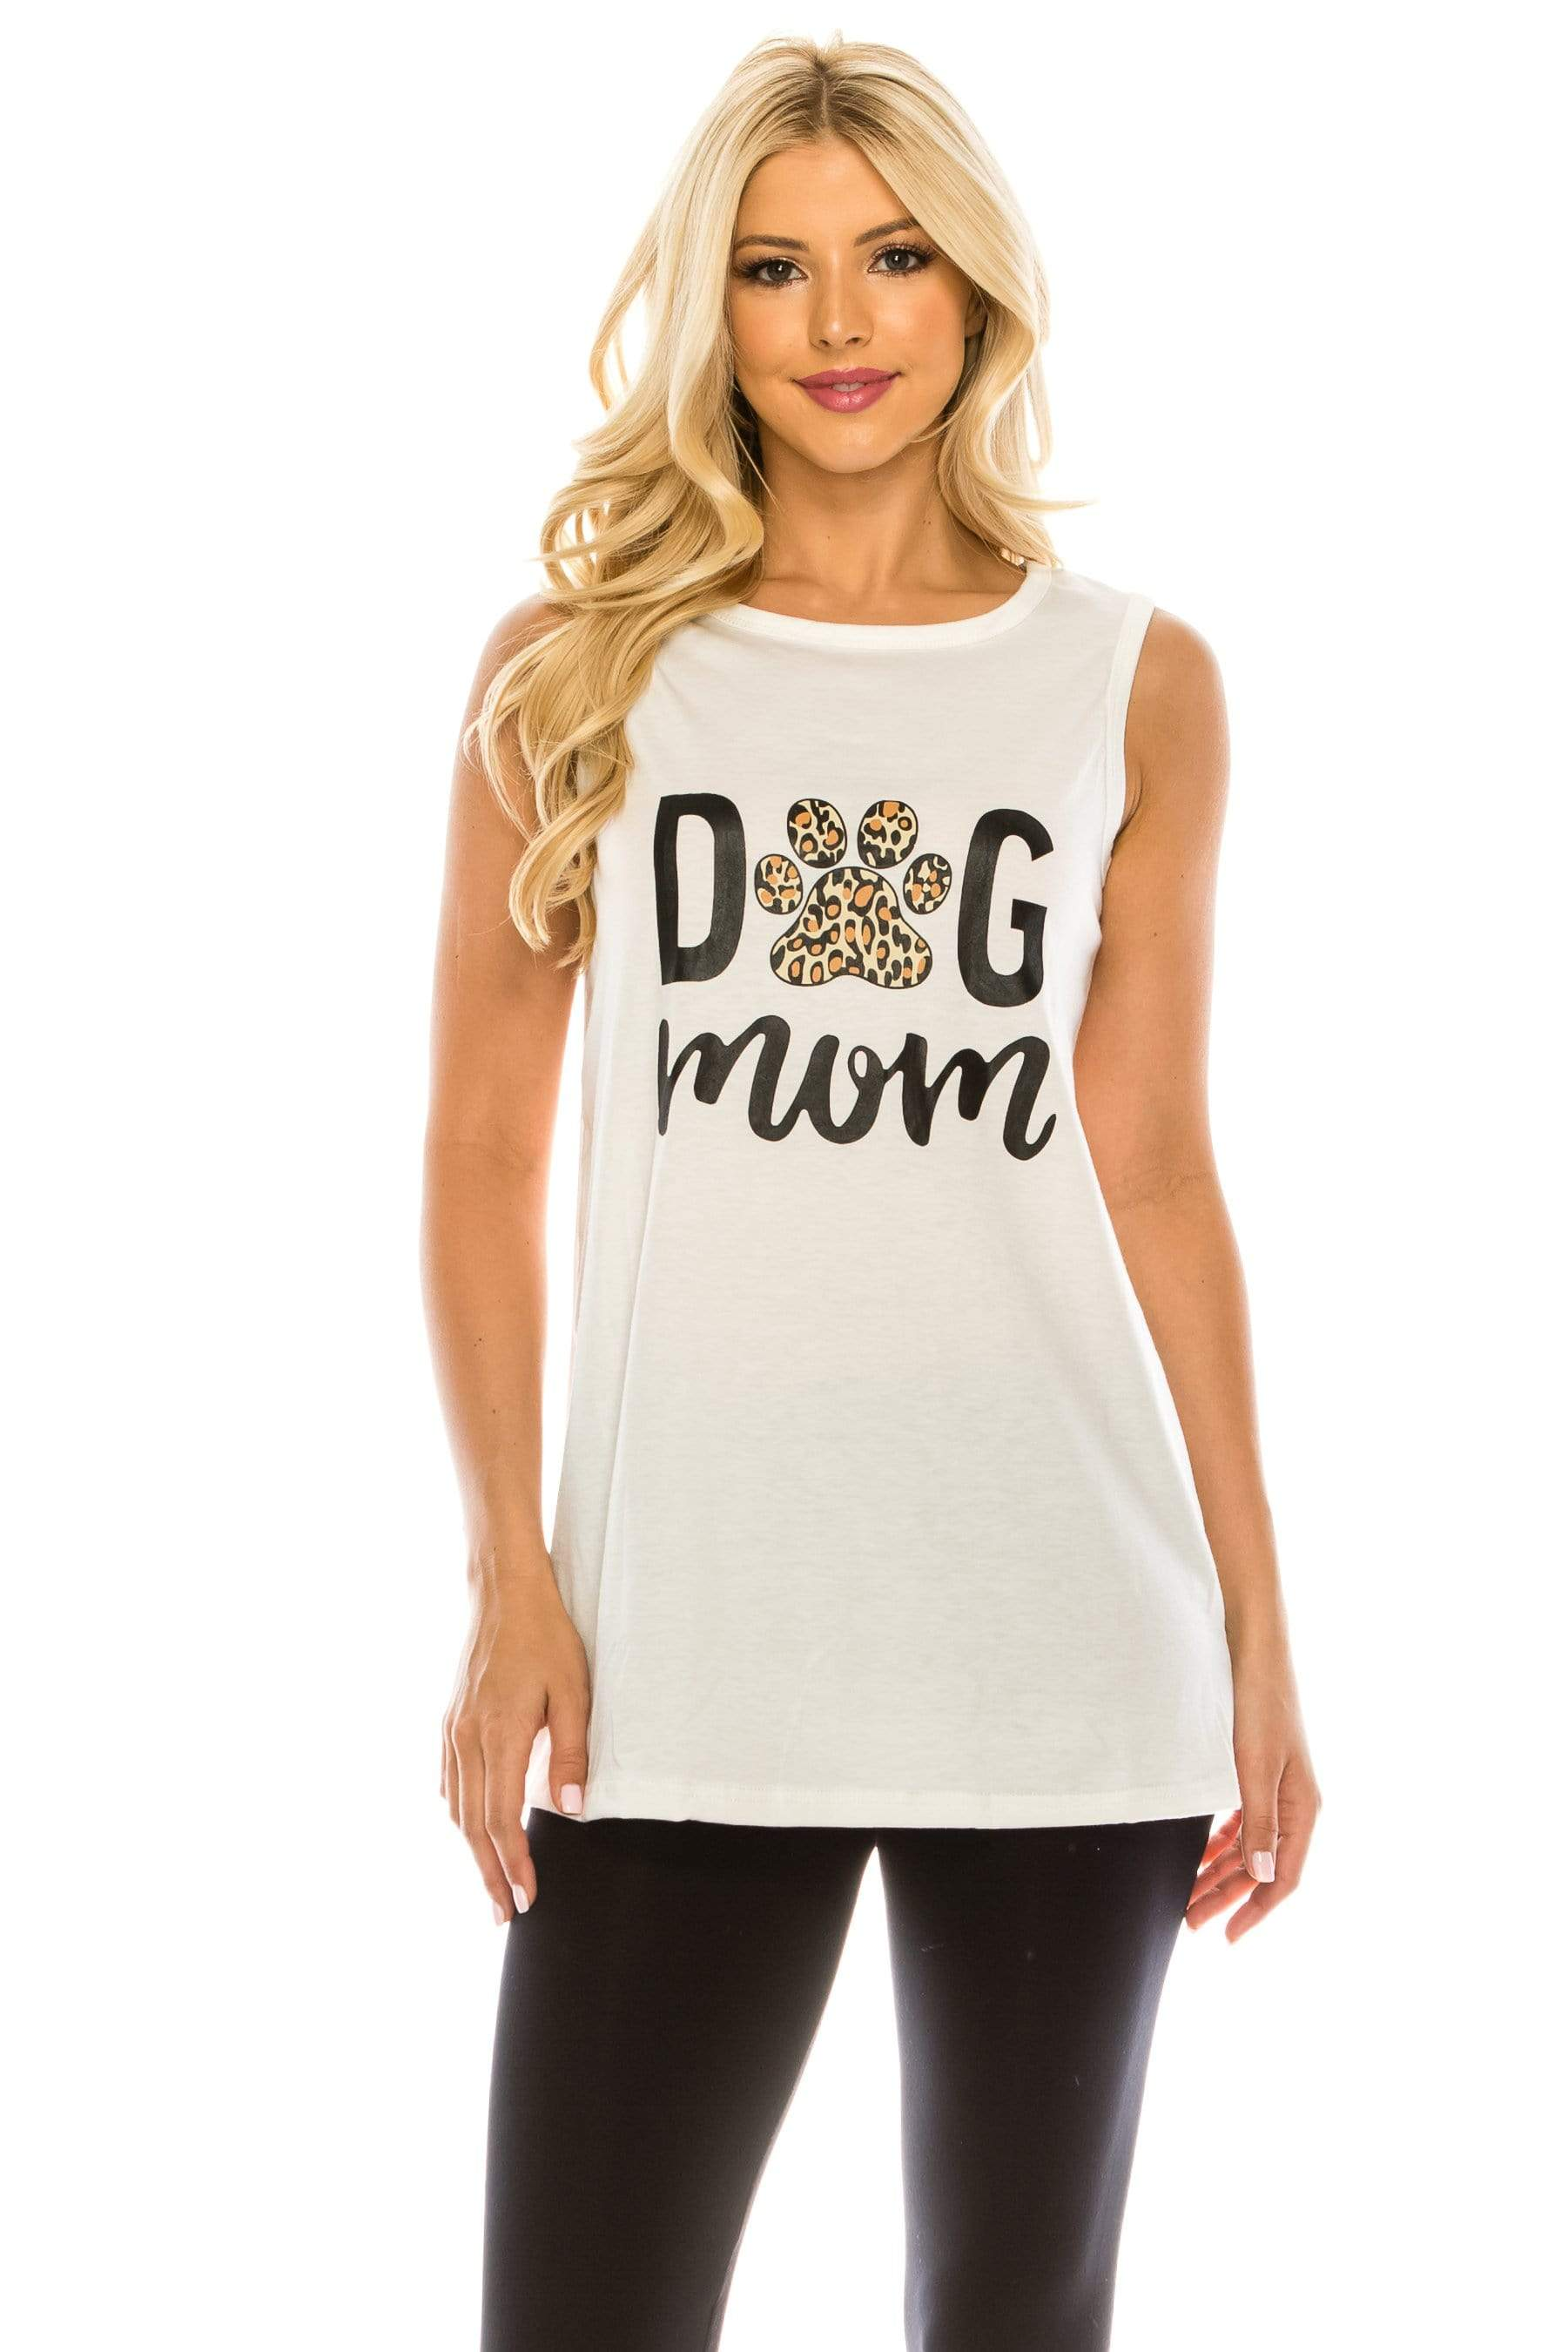 Haute Edition WOMEN'S TOP WHITE / S Haute Edition Women's Dog Mom Loose Fit Tank top. Plus size available